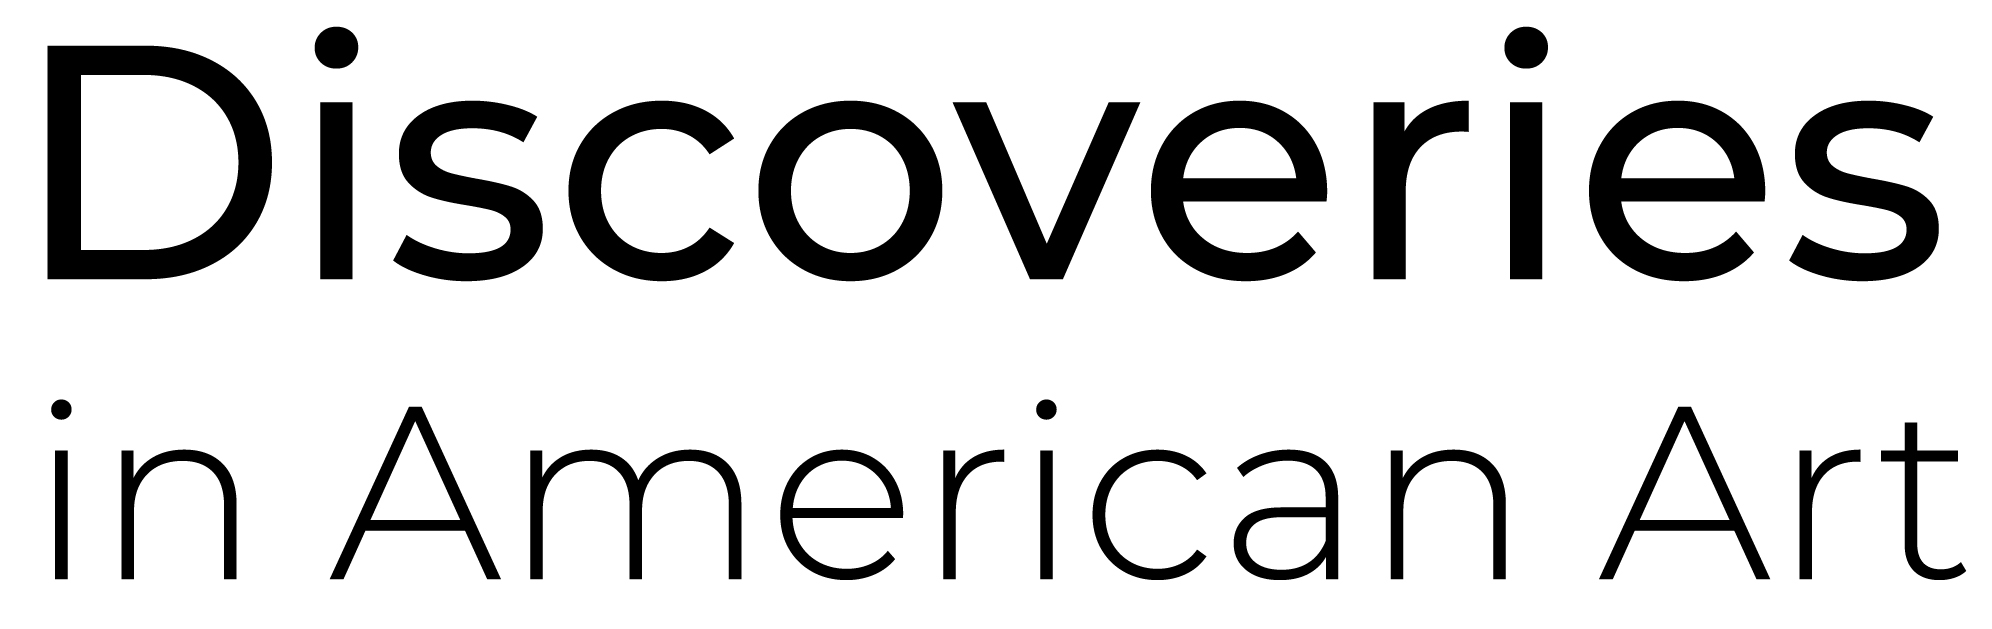 Discoveries-in-american-art-logo.jpg